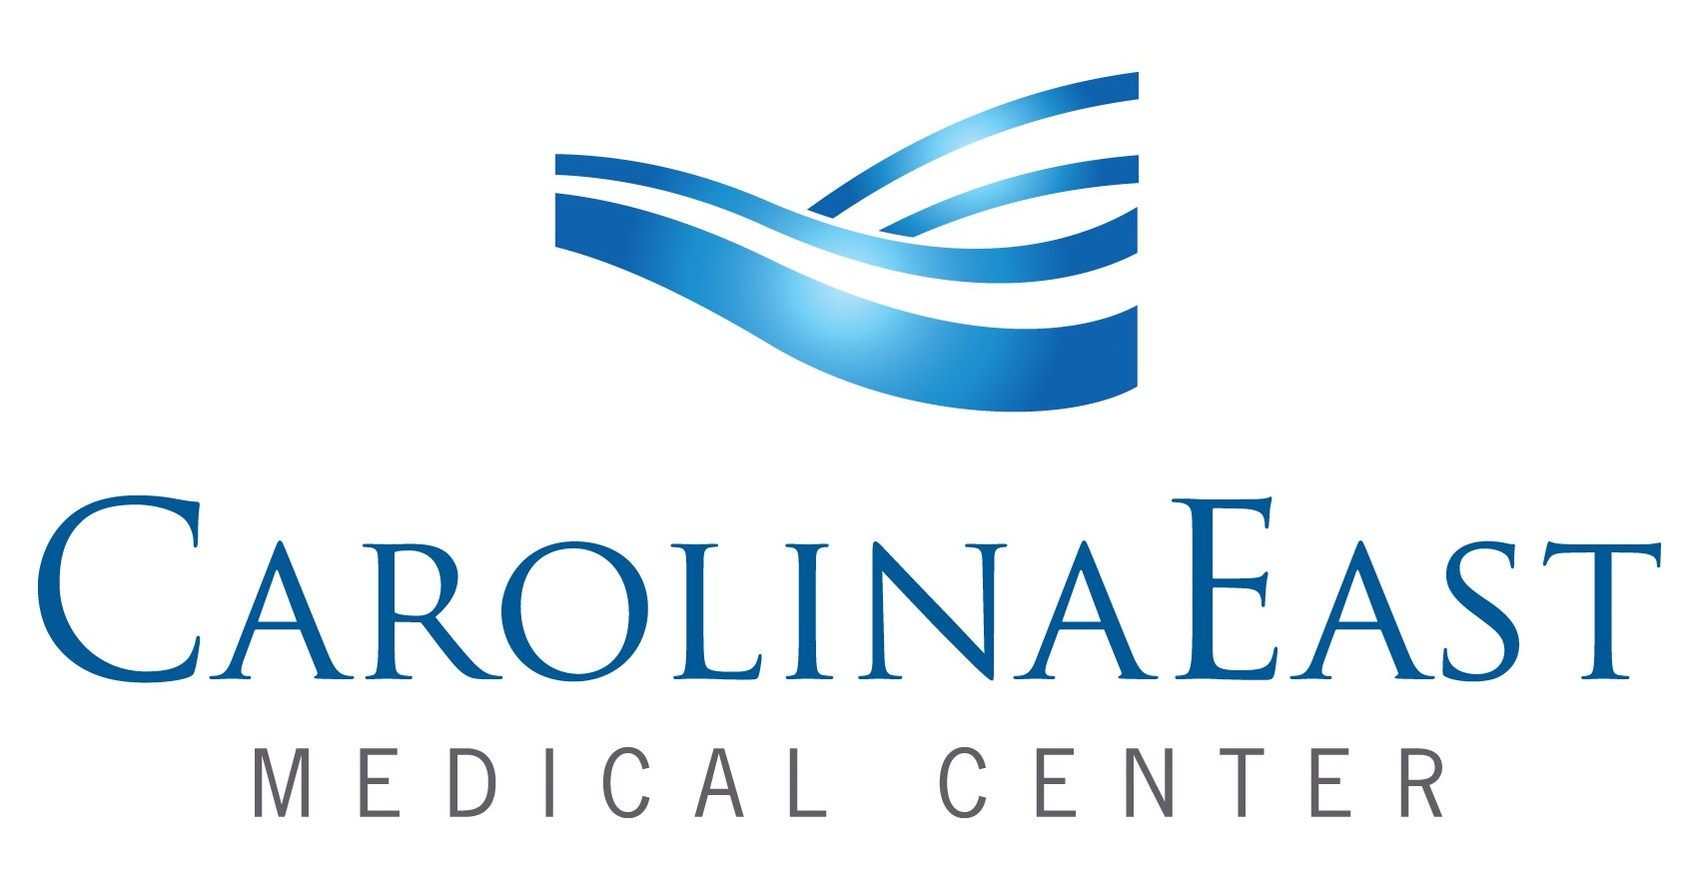 NEW BERN, N.C., March 4, 2021 /PRNewswire/ -- For the sixth year in a row, CarolinaEast Medical Center has been named one of the top best hospitals in the state by Business North Carolina magazine in their annual